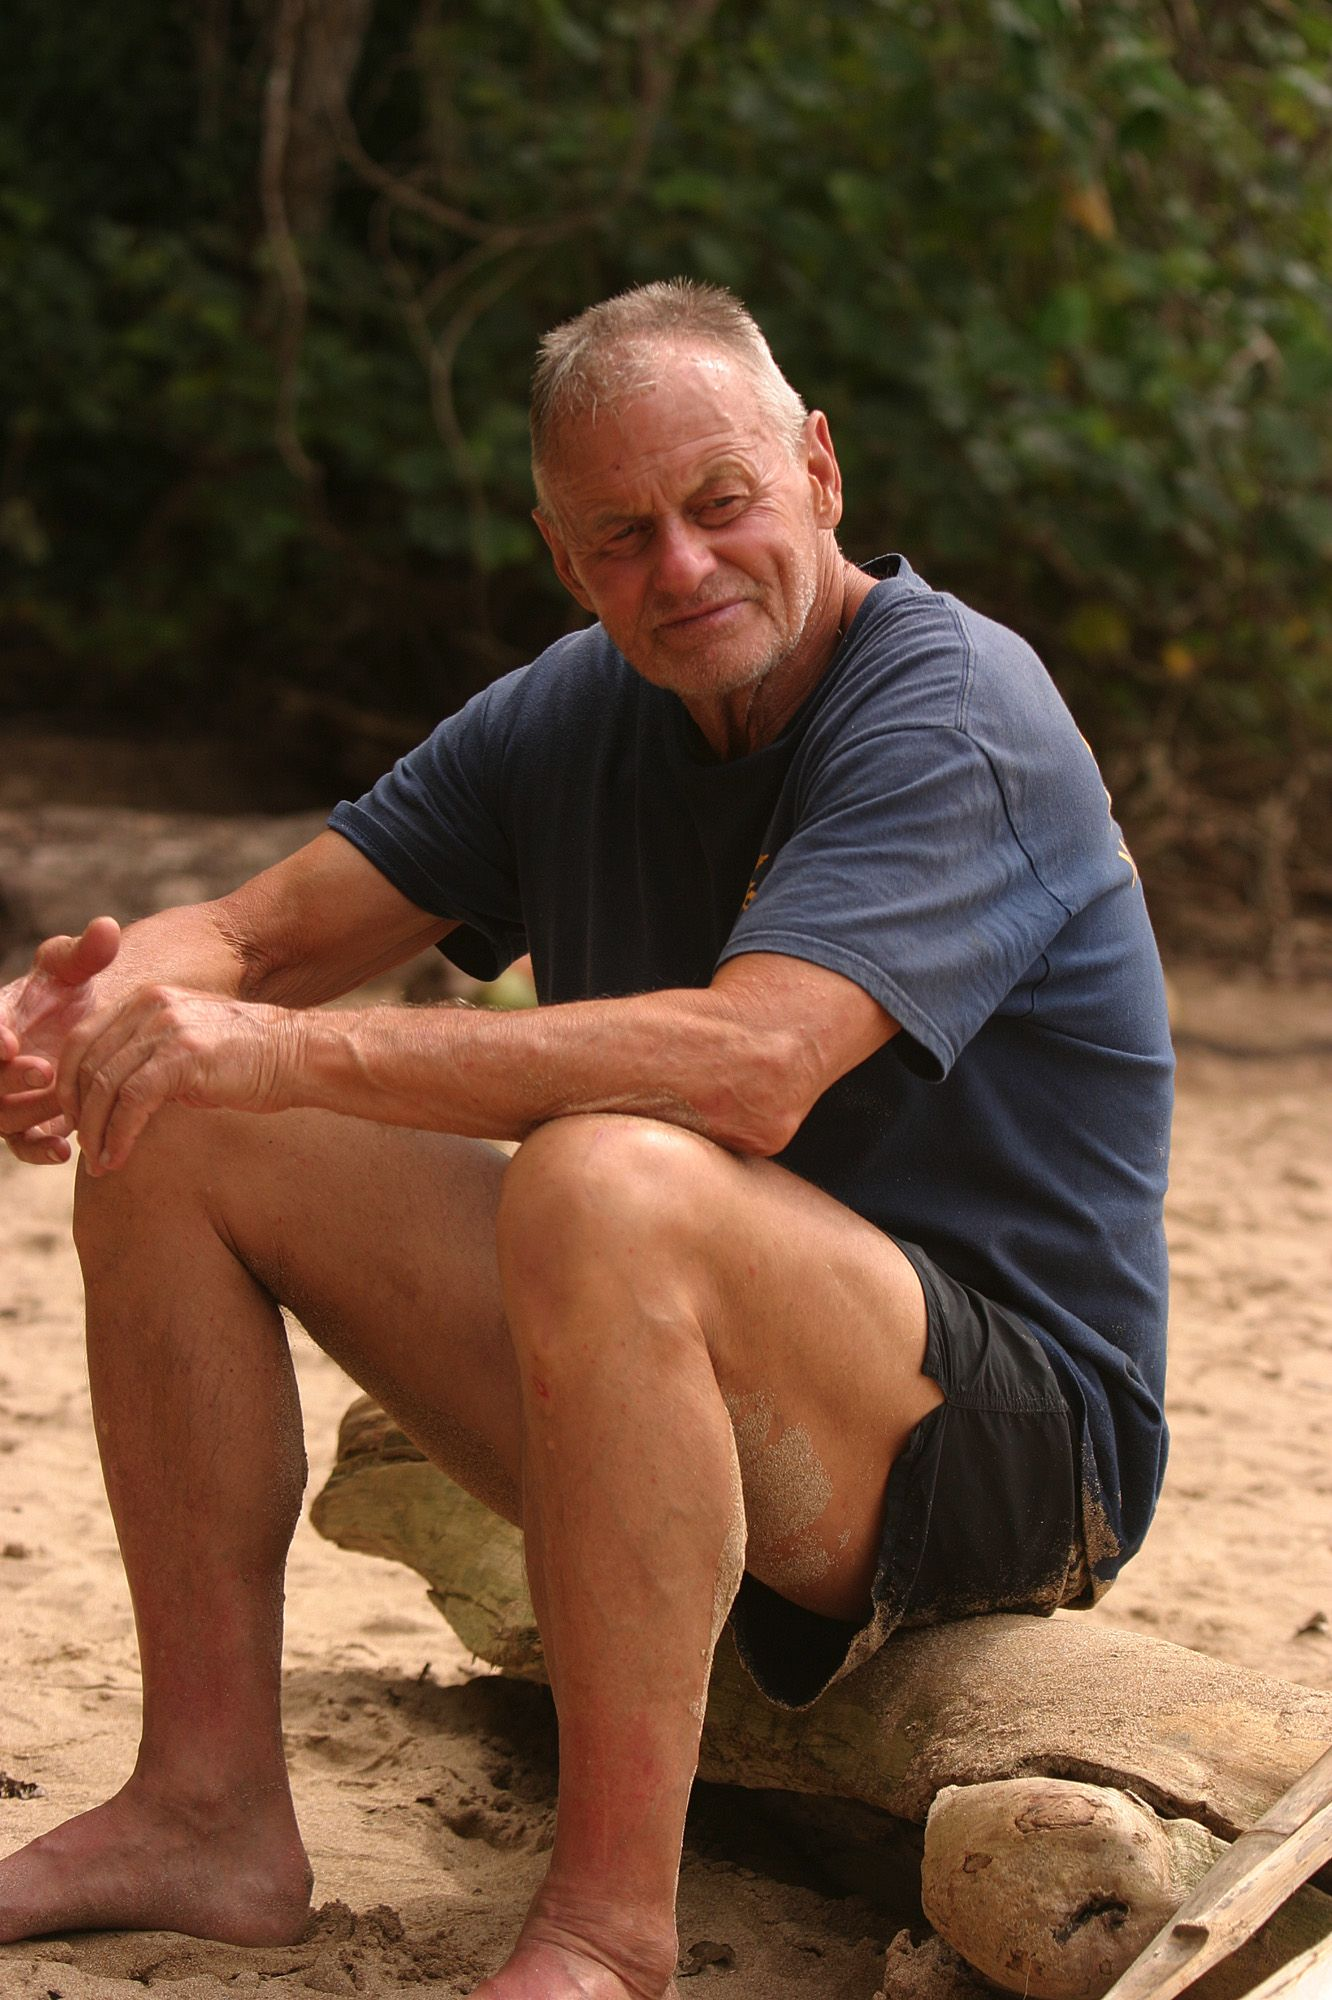 The Oldest Survivor Contestant Ever Is Rudy Boesch—He Was Born in the 1920s